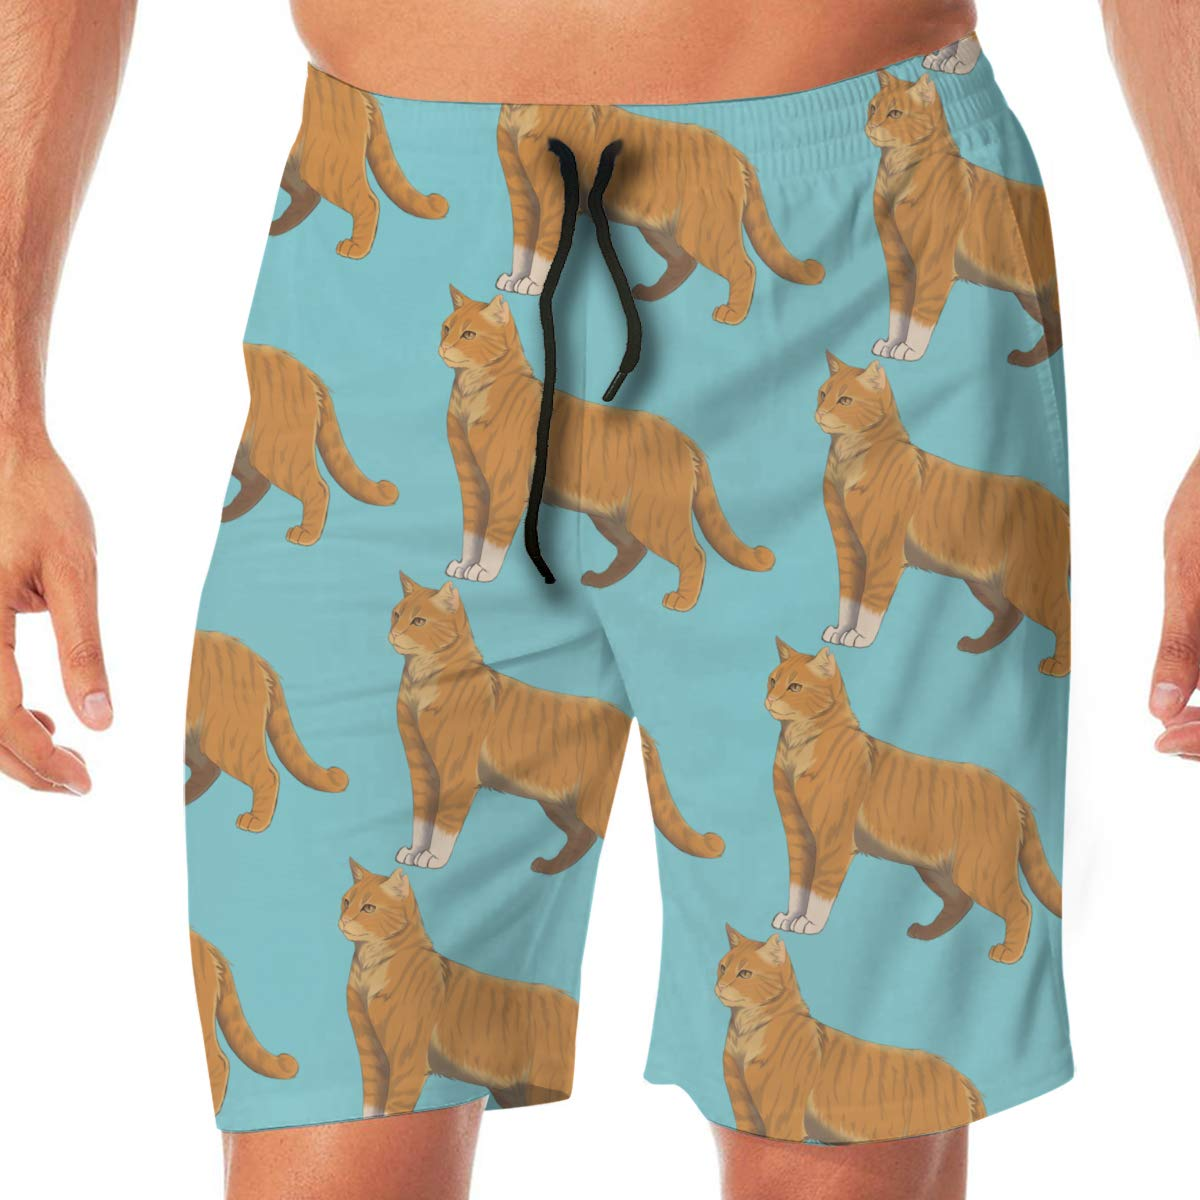 Woxianghe Mens Active Athletic Performance Shorts with Pockets Christmas Cat